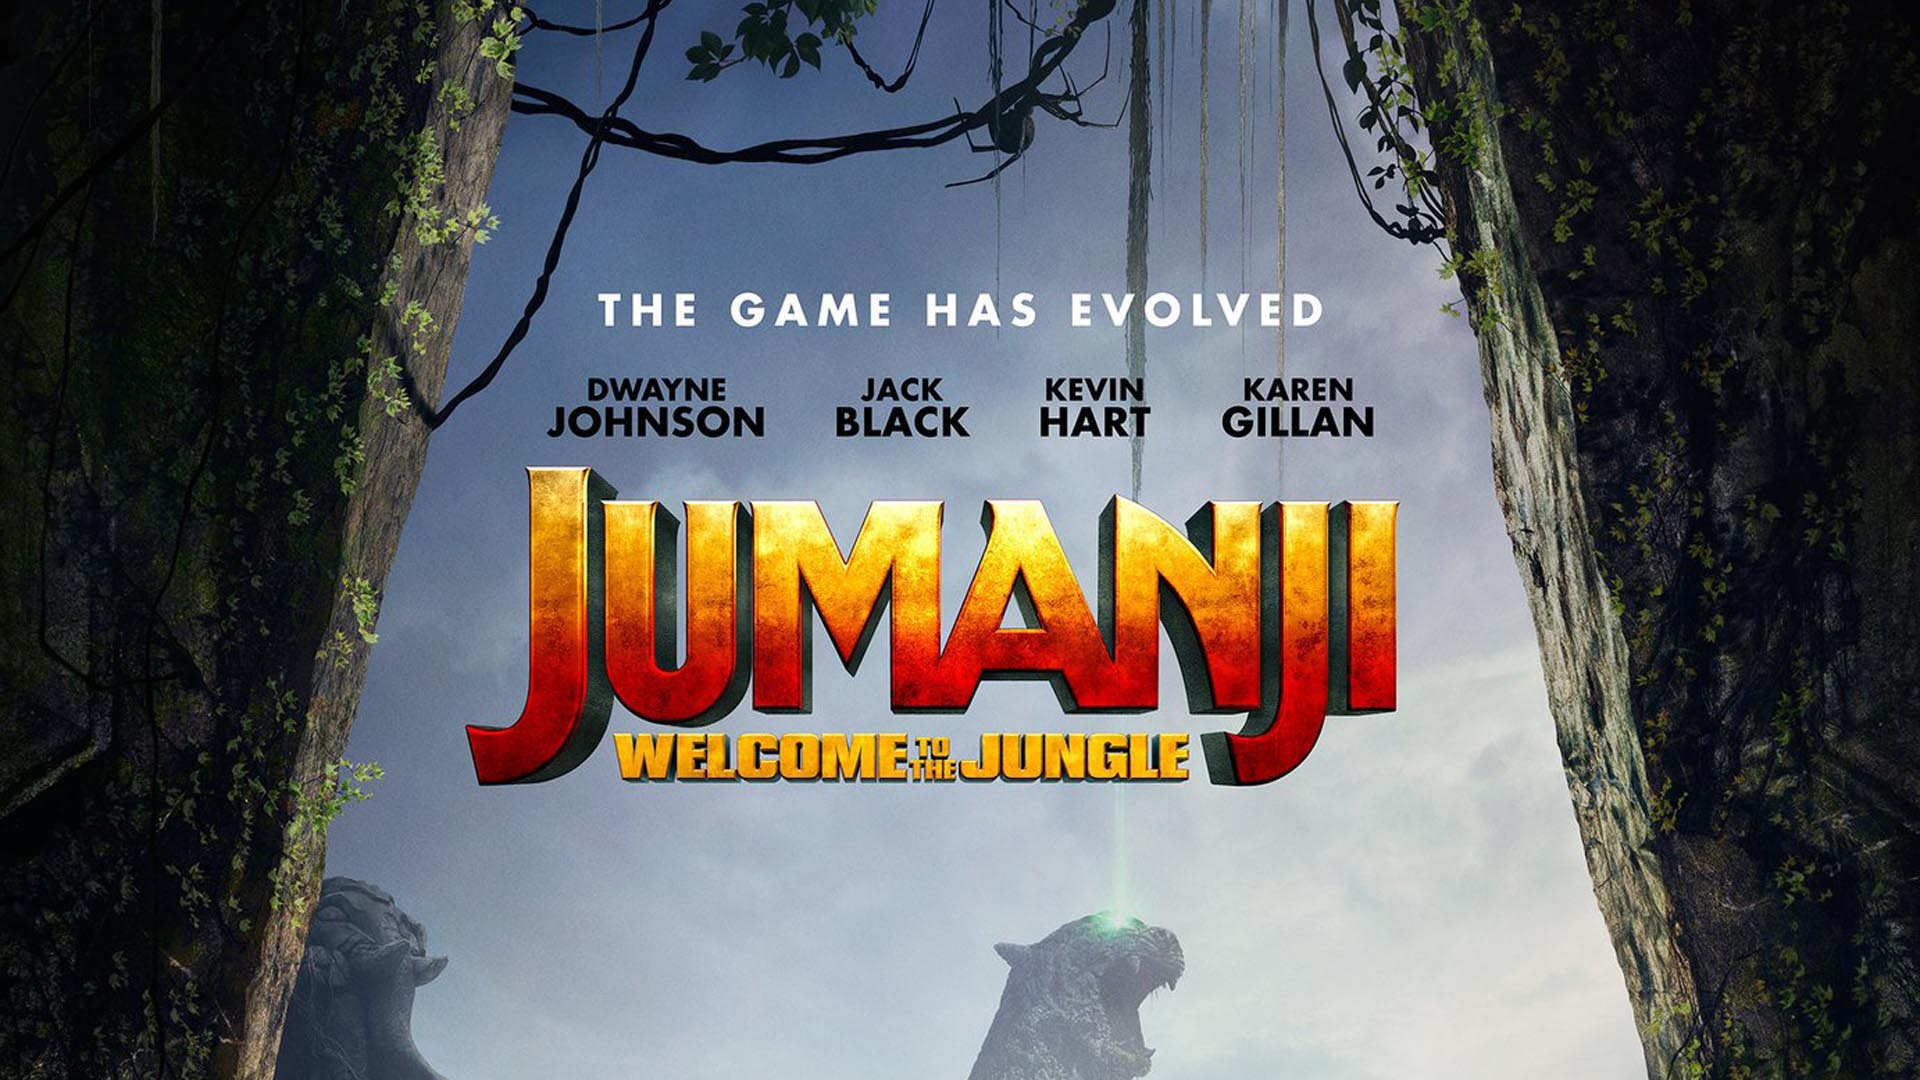 Jumanji Welcome to the Jungle Movie Wallpaper 62107 1920x1080 px ...